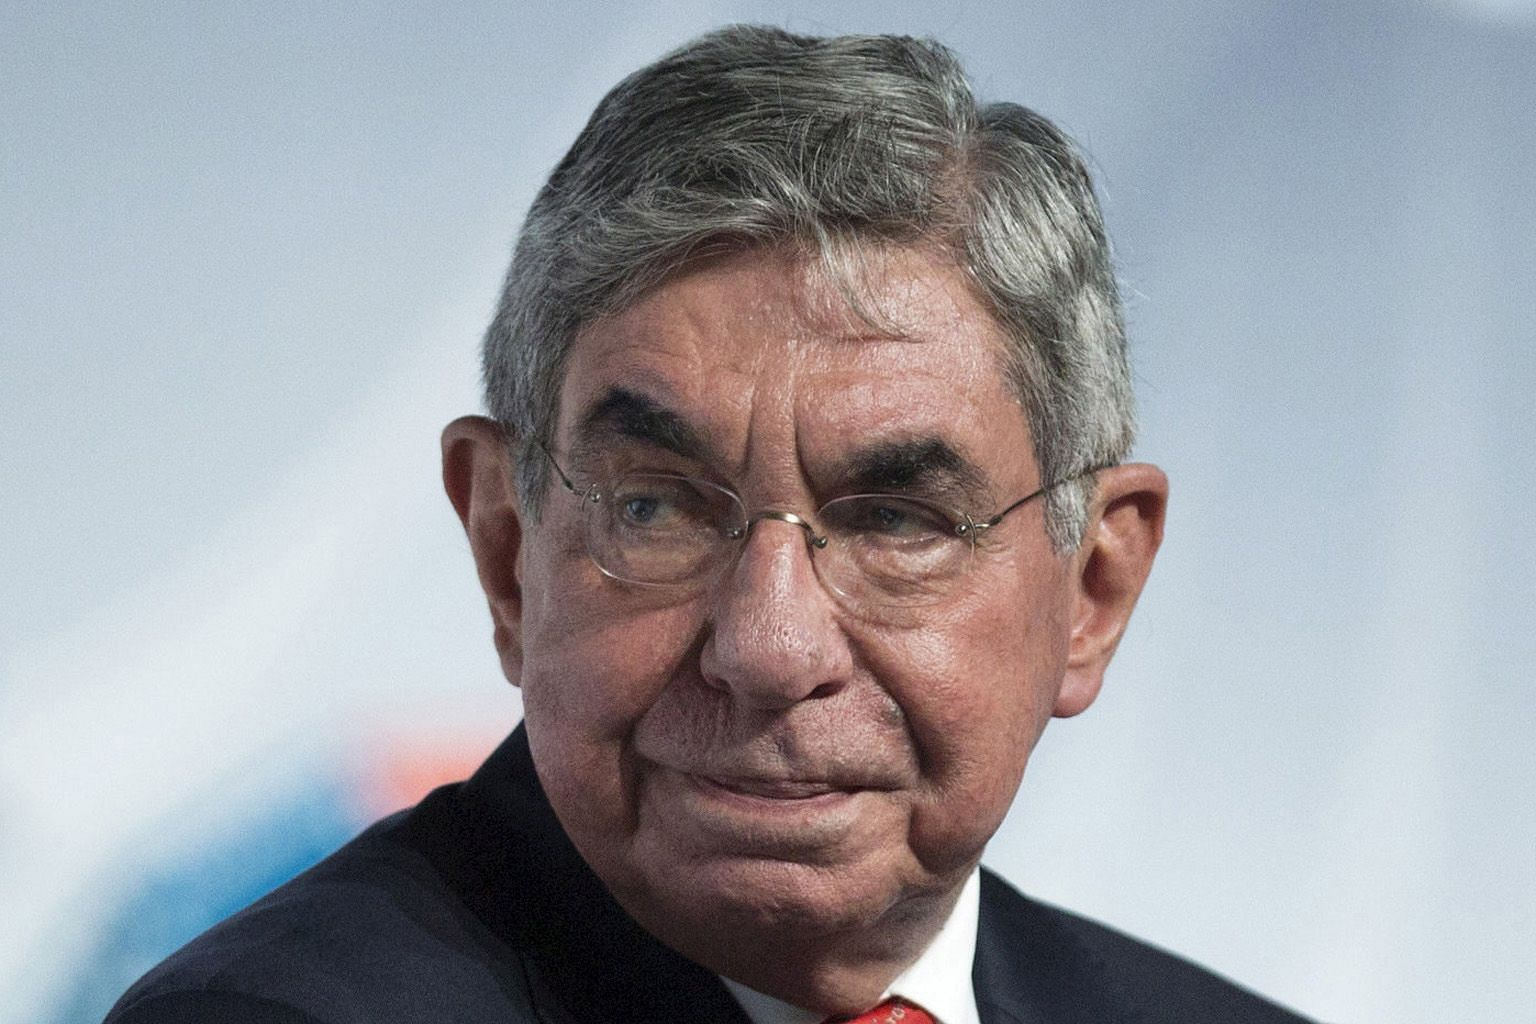 More women have come forward since the first accusation was made against Mr Oscar Arias.